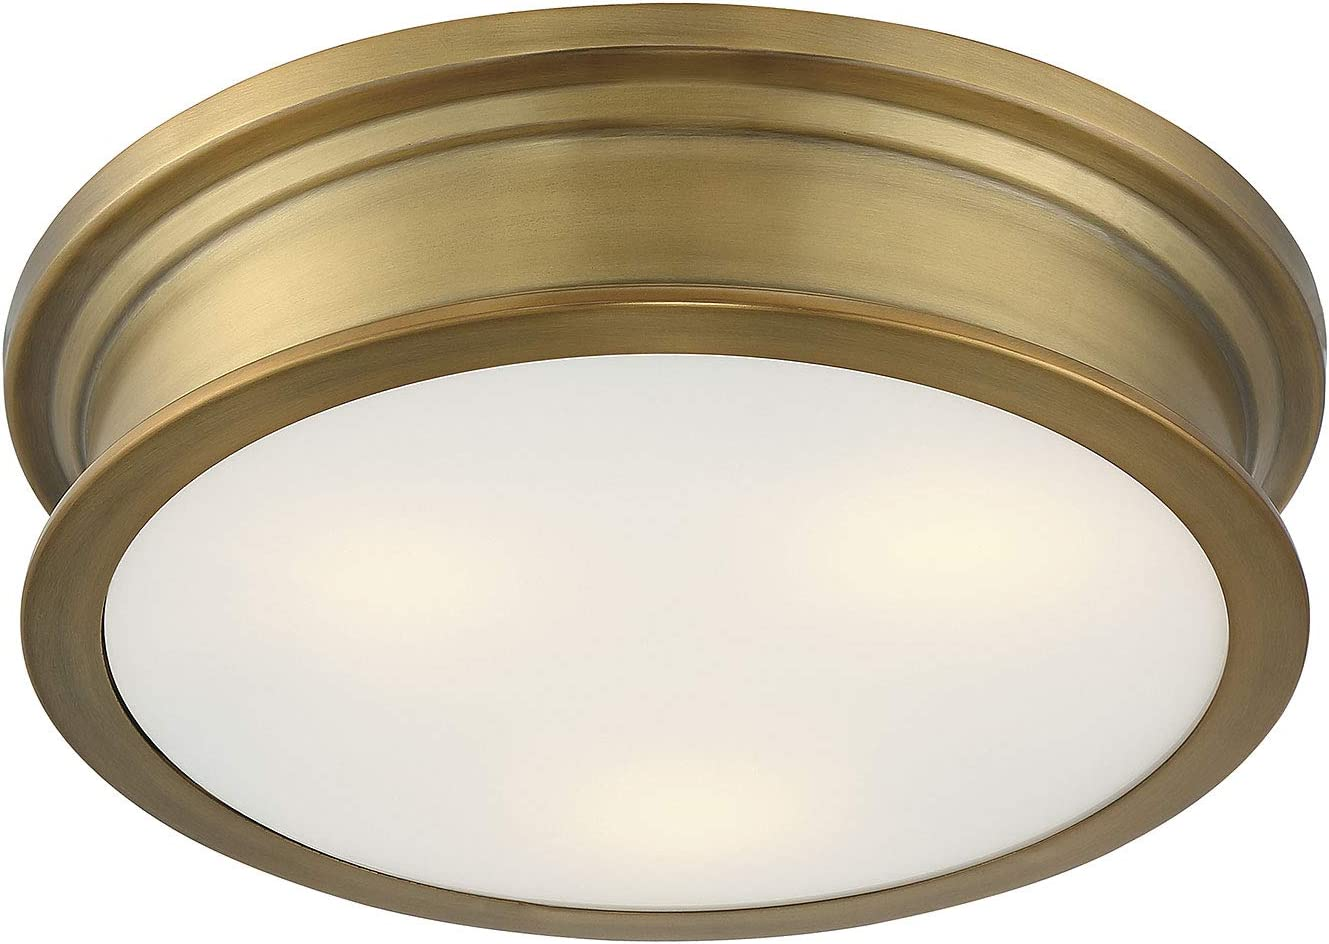 "Savoy House 6-133-16-322 Watkins Warm Brass Flush Mount (16"" W x 4""H)"